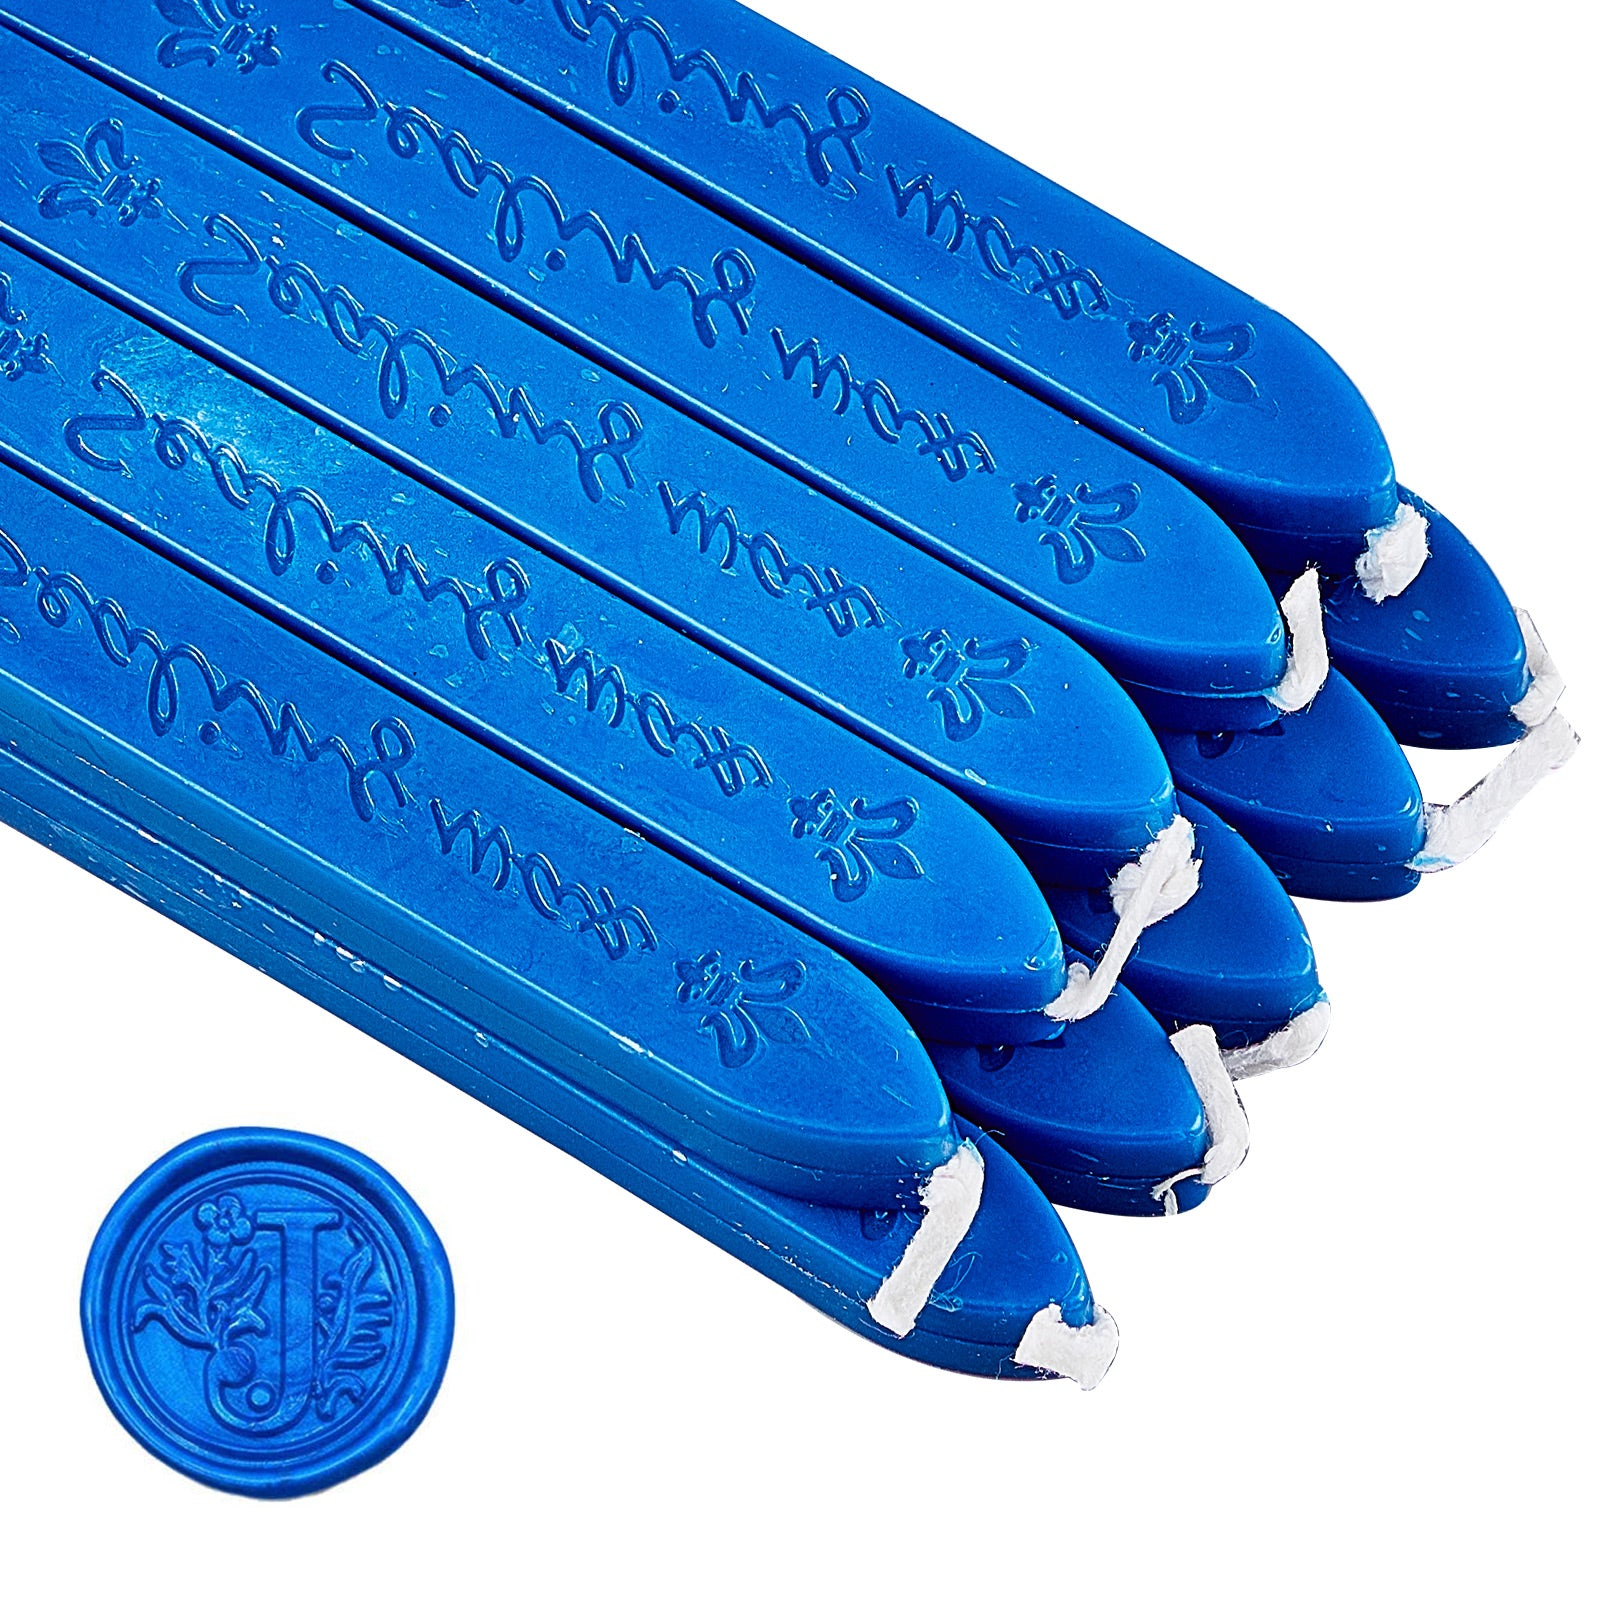 20 Pieces Sealing Wax Sticks with Wicks(Dark Blue)